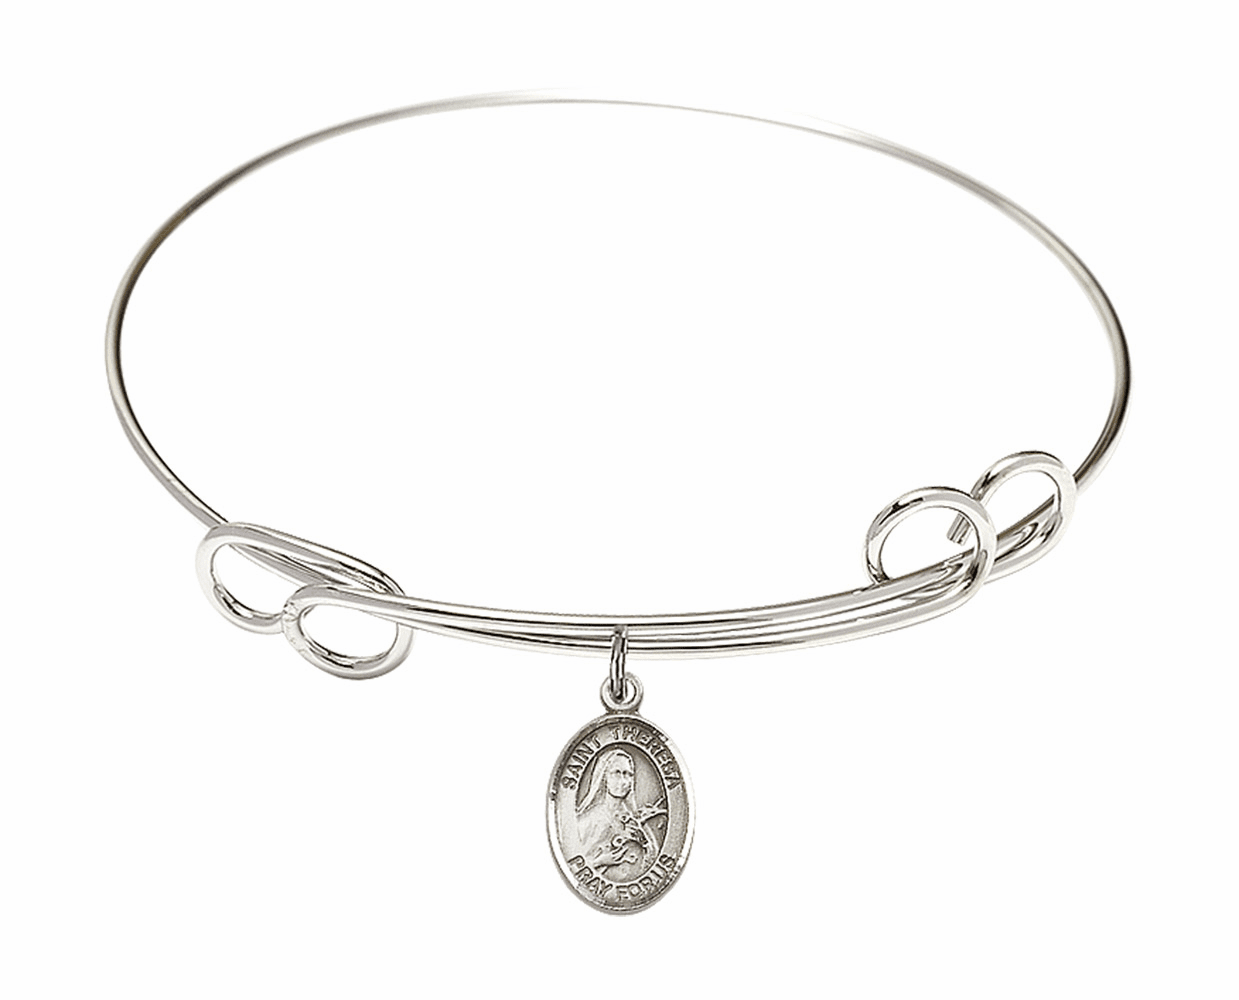 Round Loop St Theresa Bangle Charm Bracelet by Bliss